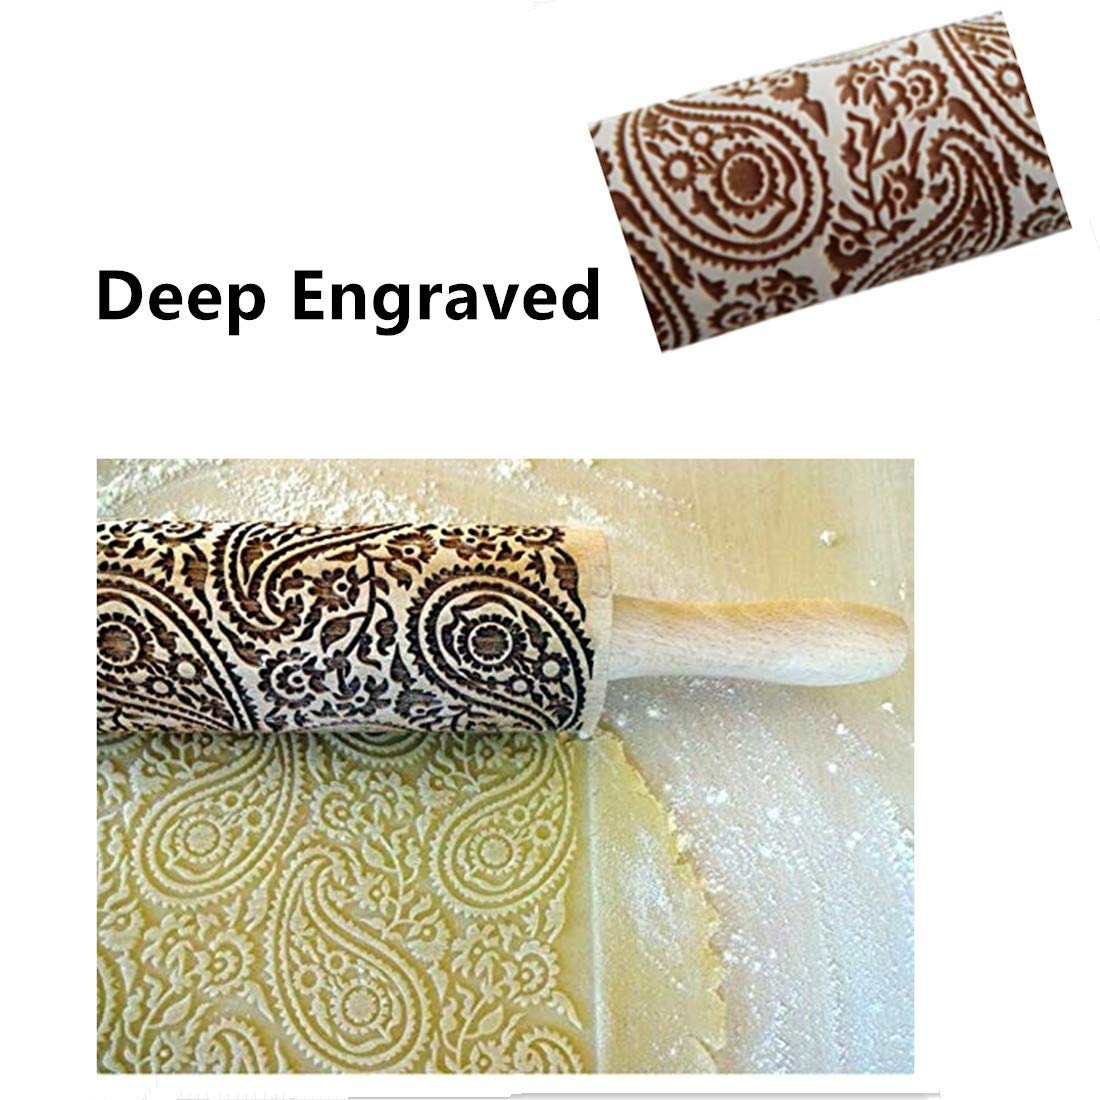 Kisshome Embossed Wooden Rolling Pins with Paisley Pattern,Engraved 3D Holiday Rolling Pins for Baking to Decorate Cookies Waffles Pastry Dough Pies,15.3 Inches Flower